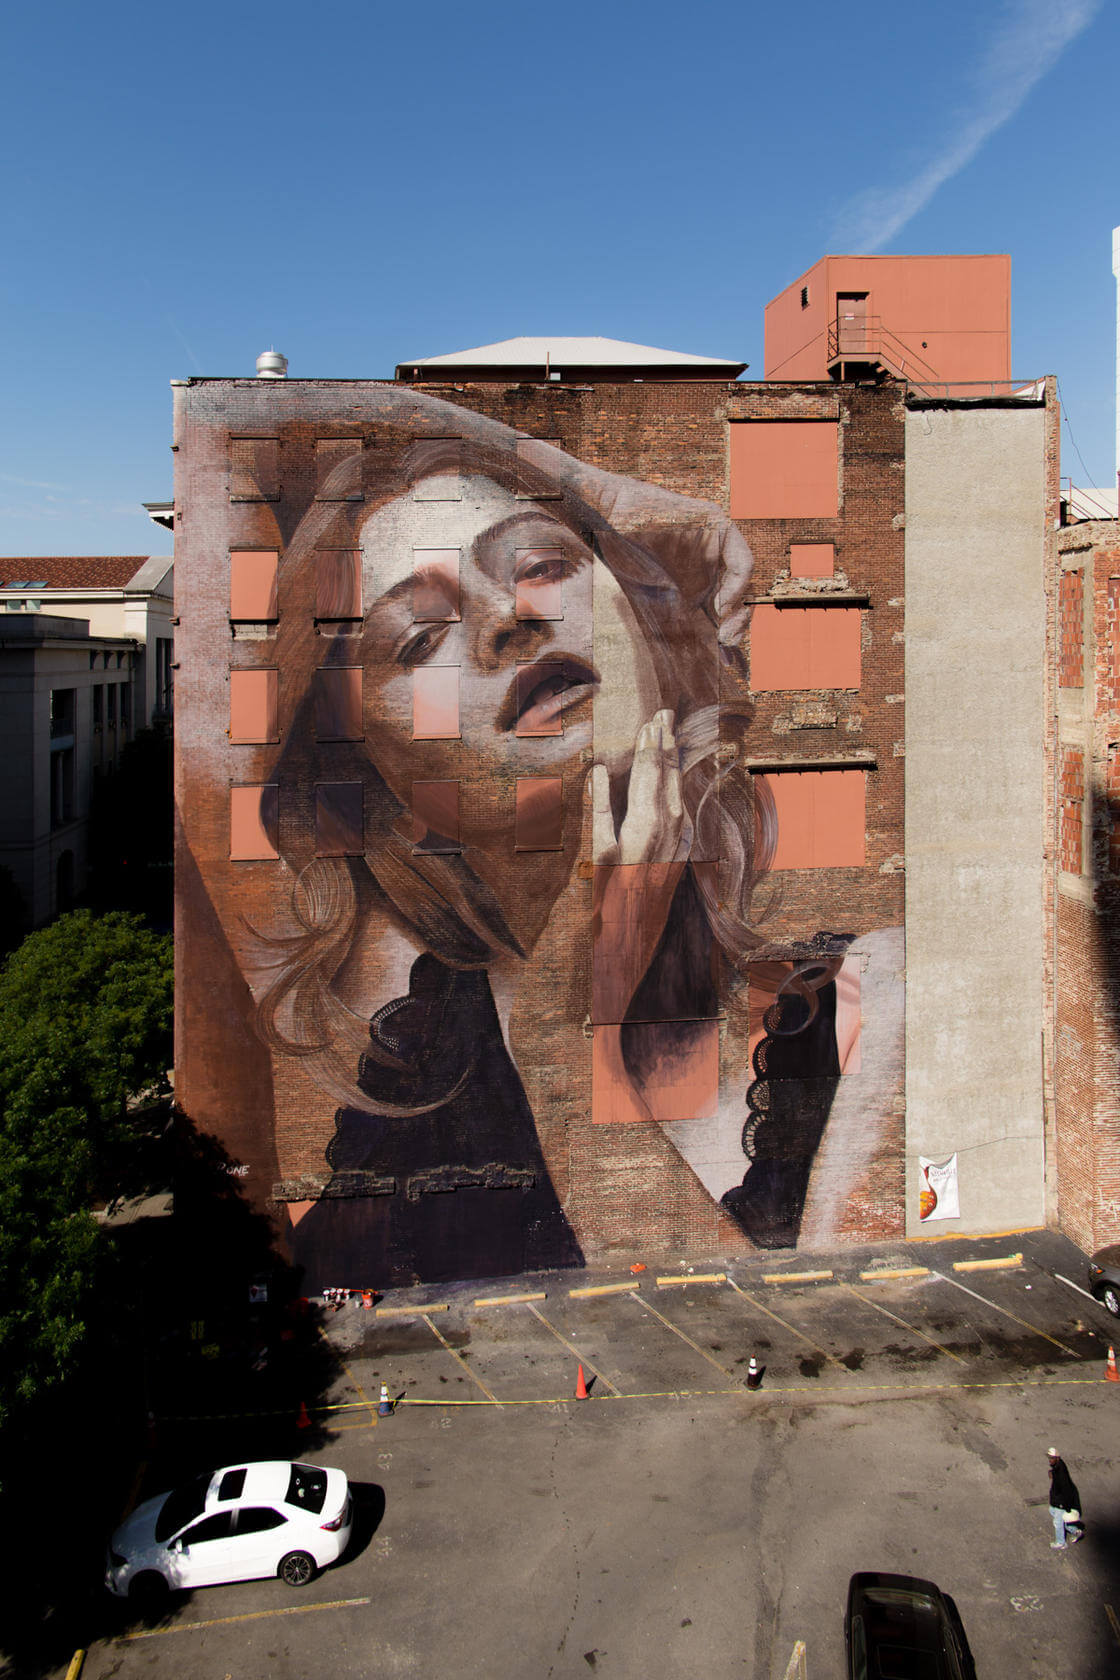 top-100-street-art-2017-best-of-murals-graffiti-year-rone-02.jpg